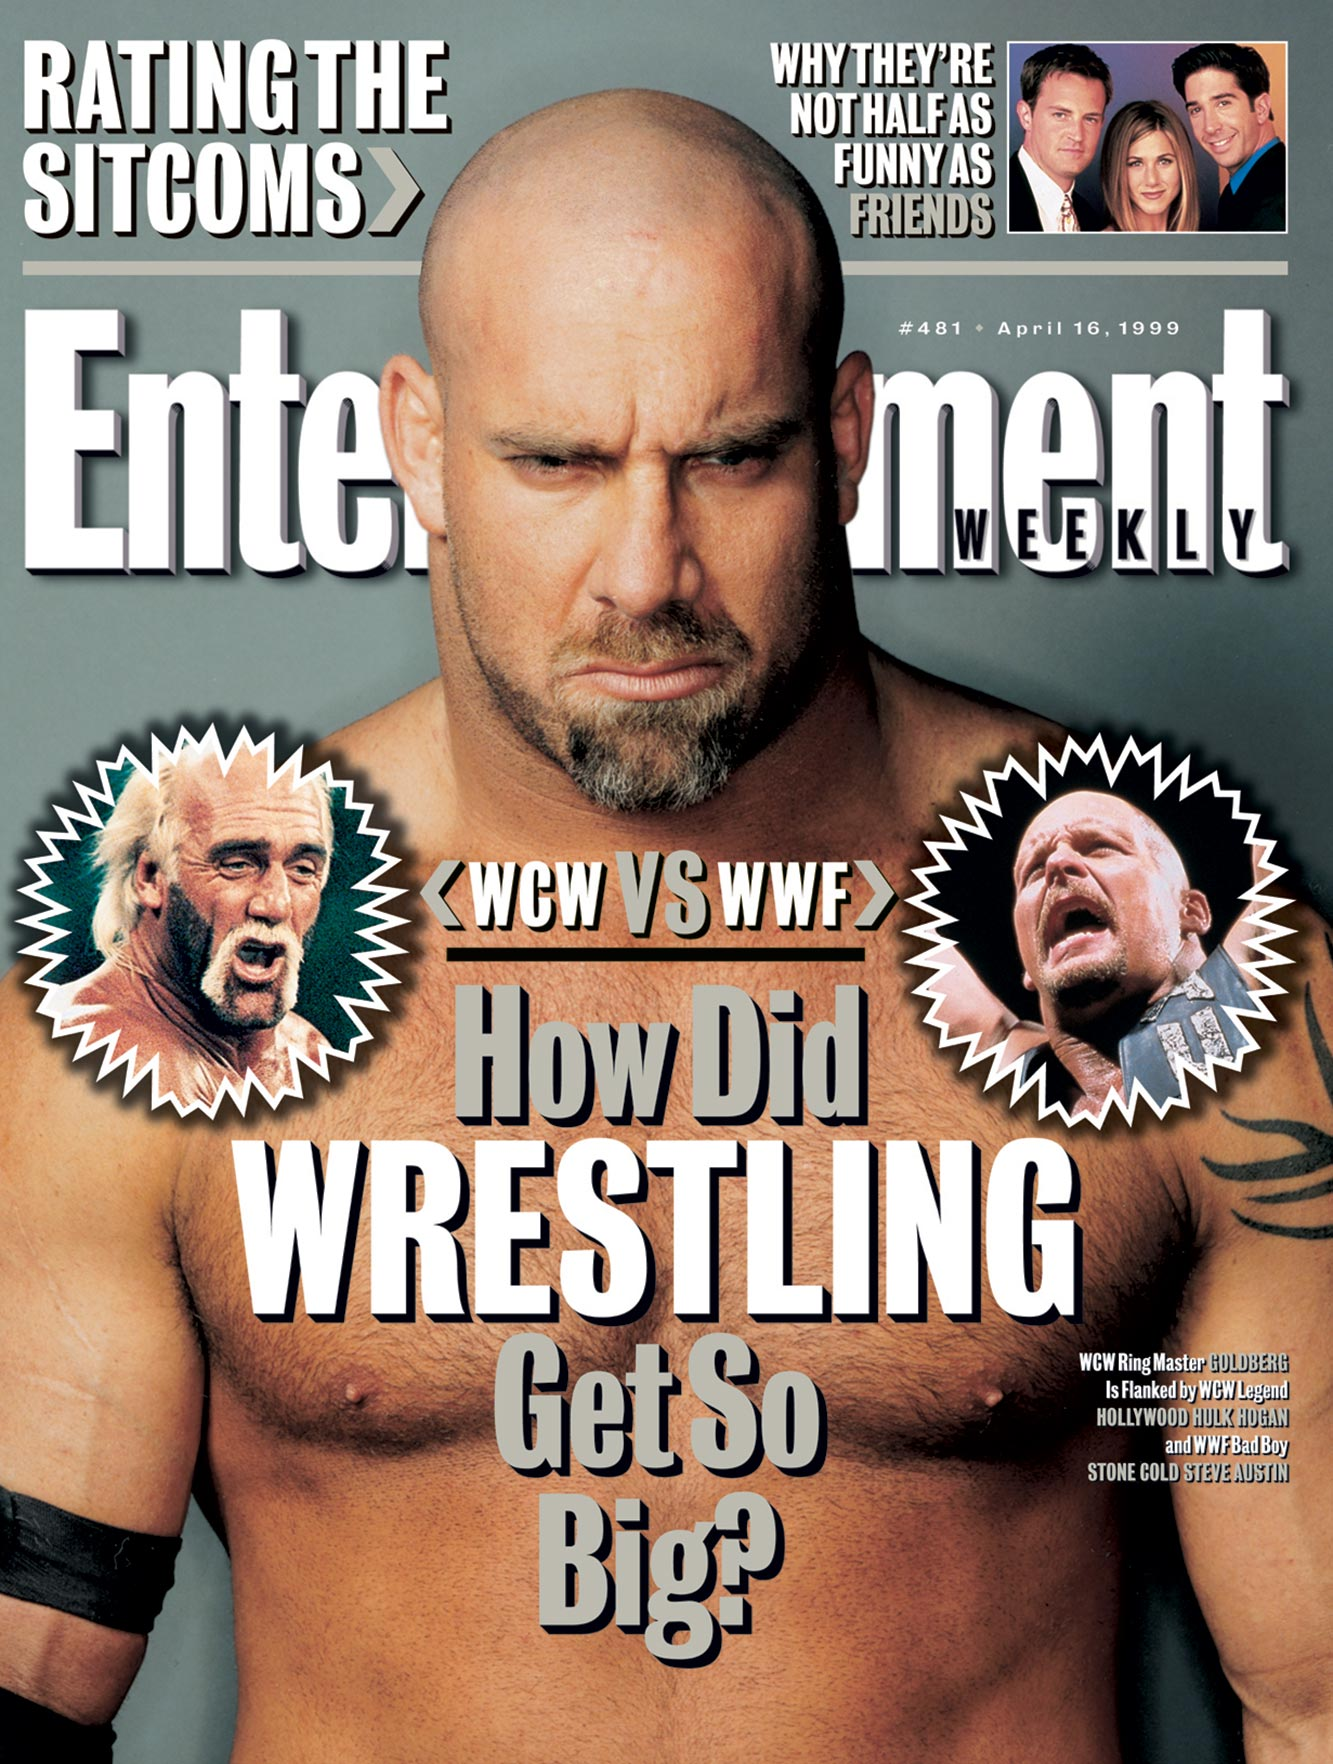 Entertainment Weekly Cover Wrestling Issue #481